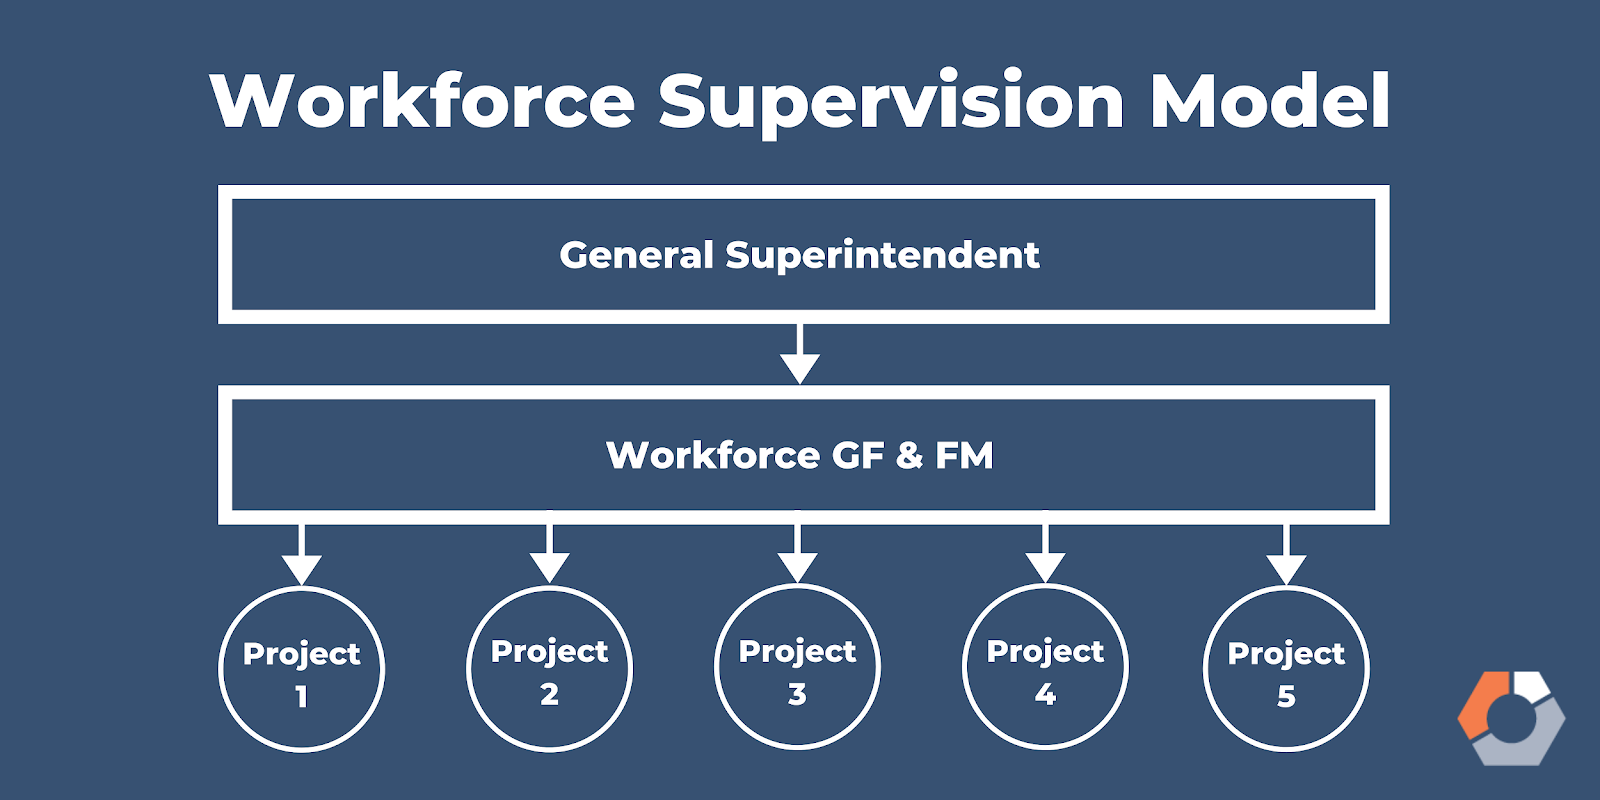 The Workforce Supervision Model.